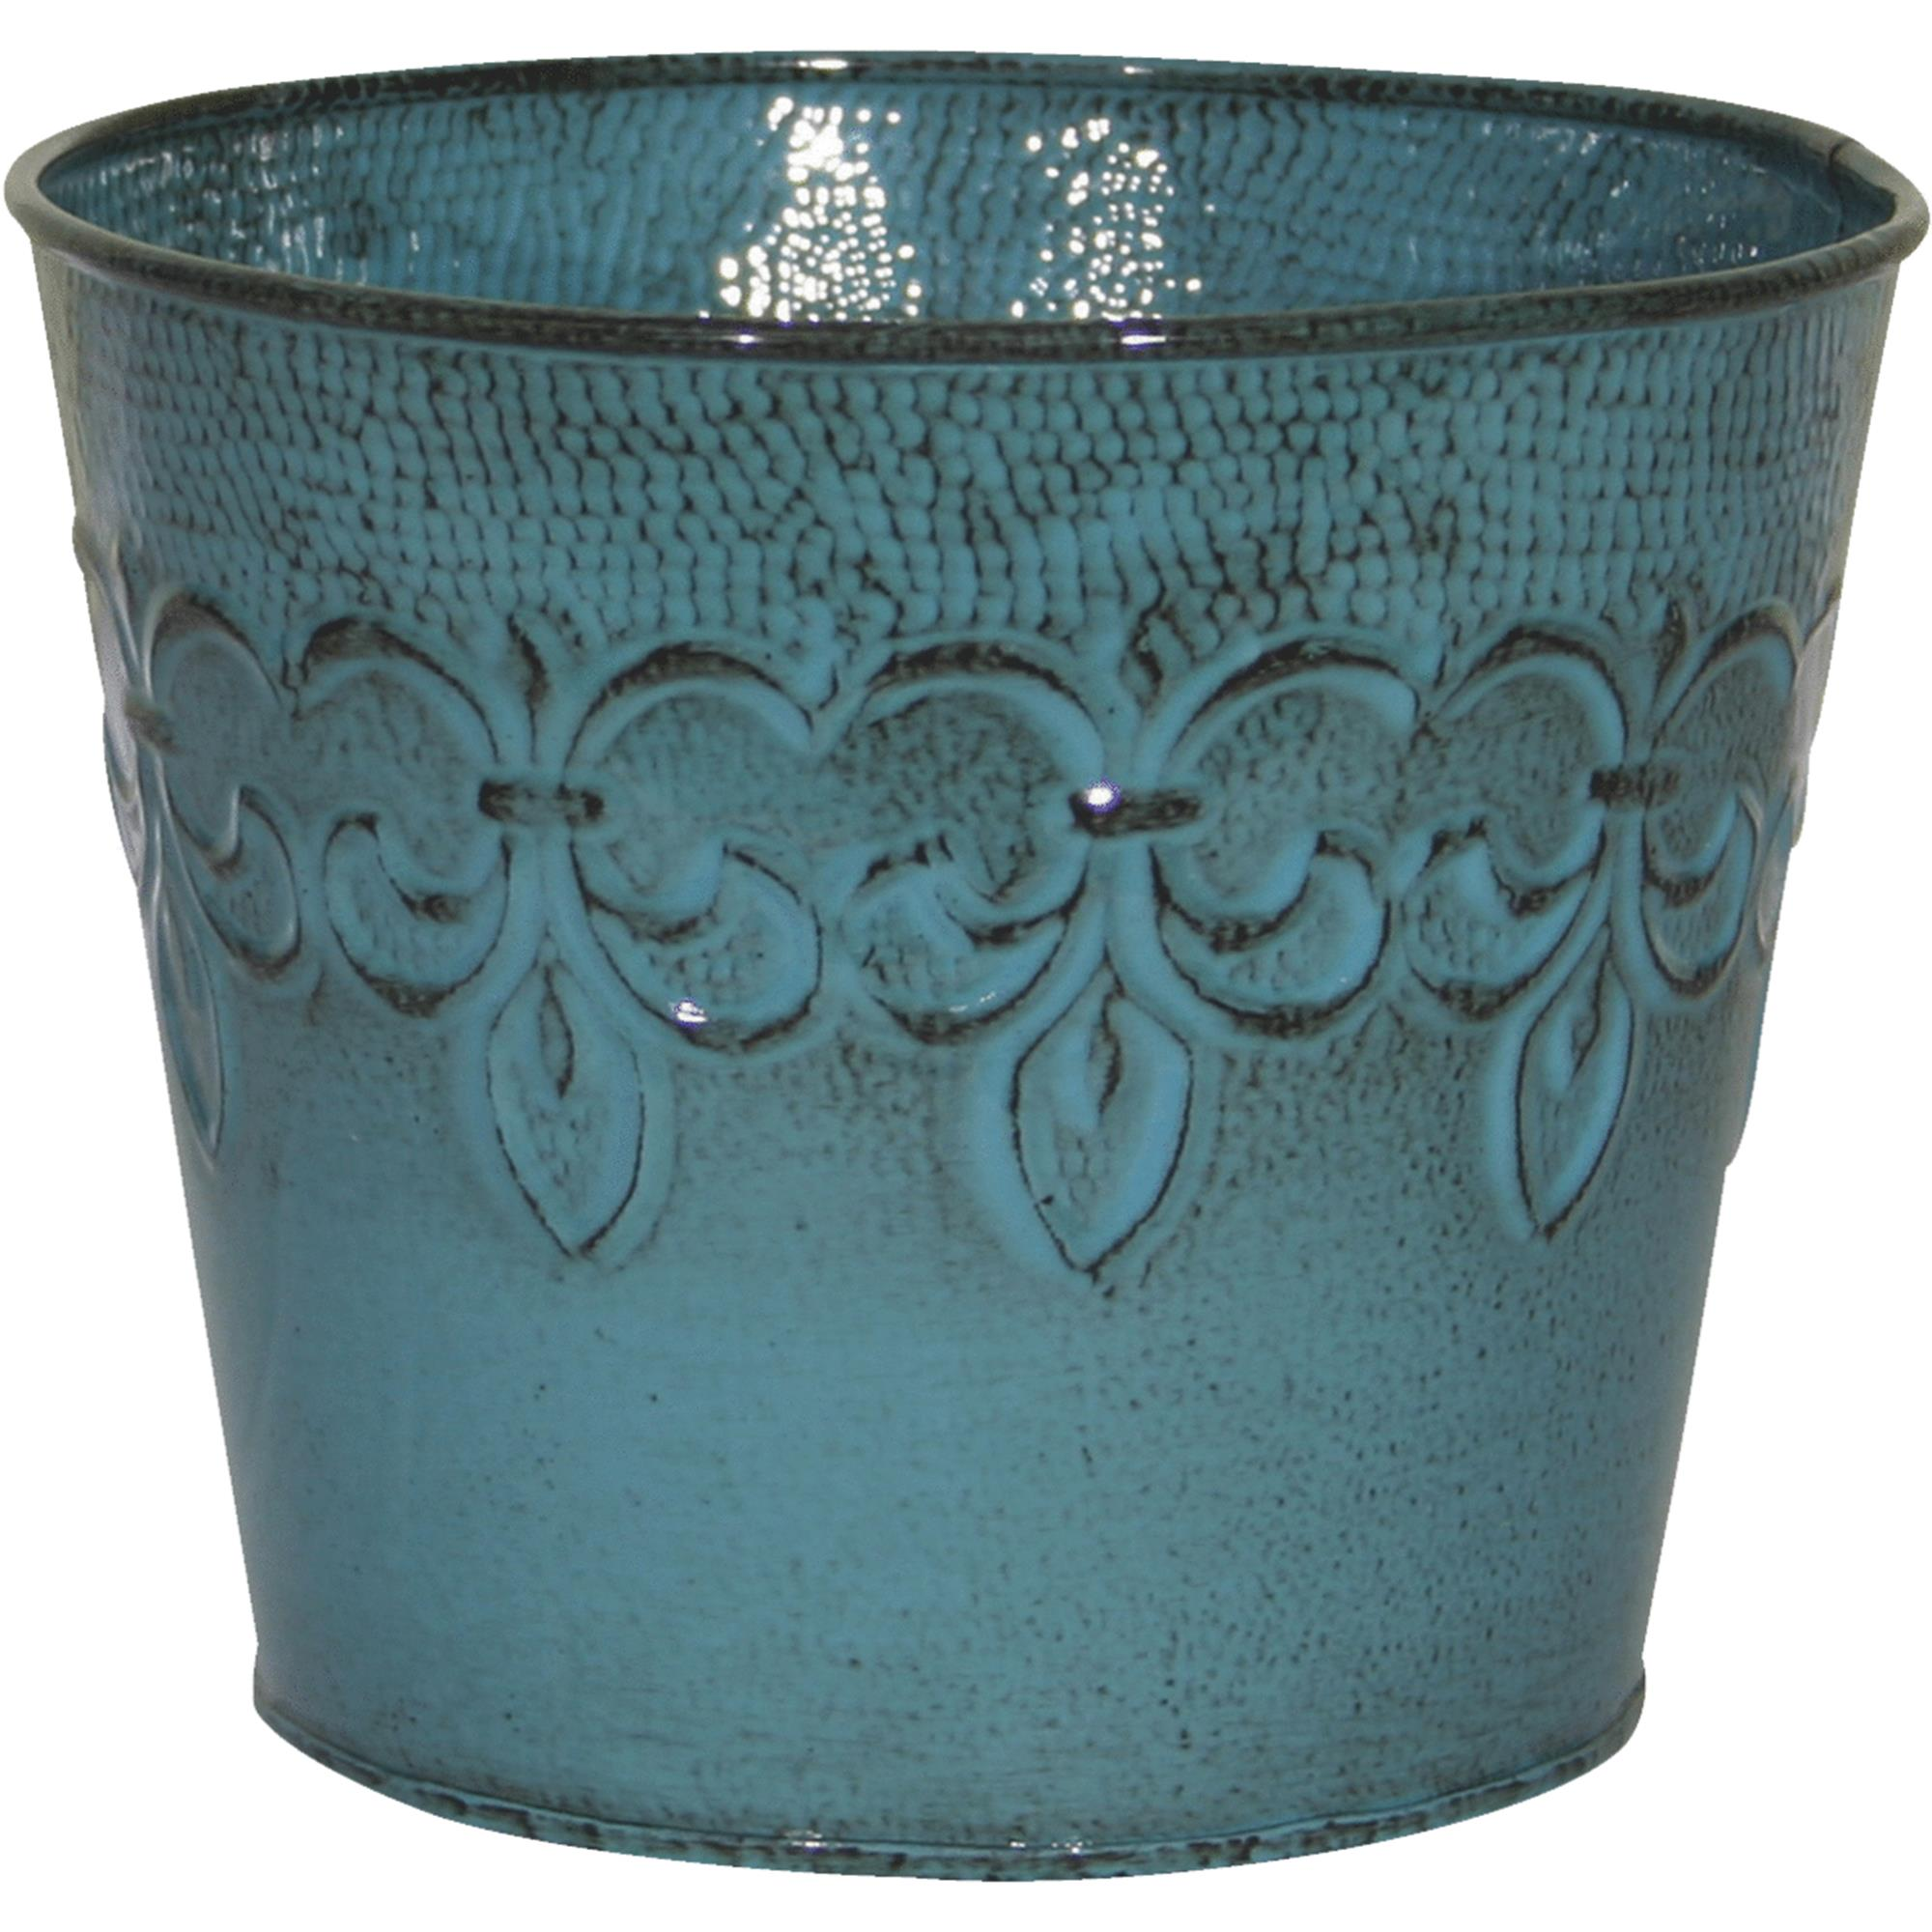 Robert Allen Fleur De Lis Planter by Robert Allen